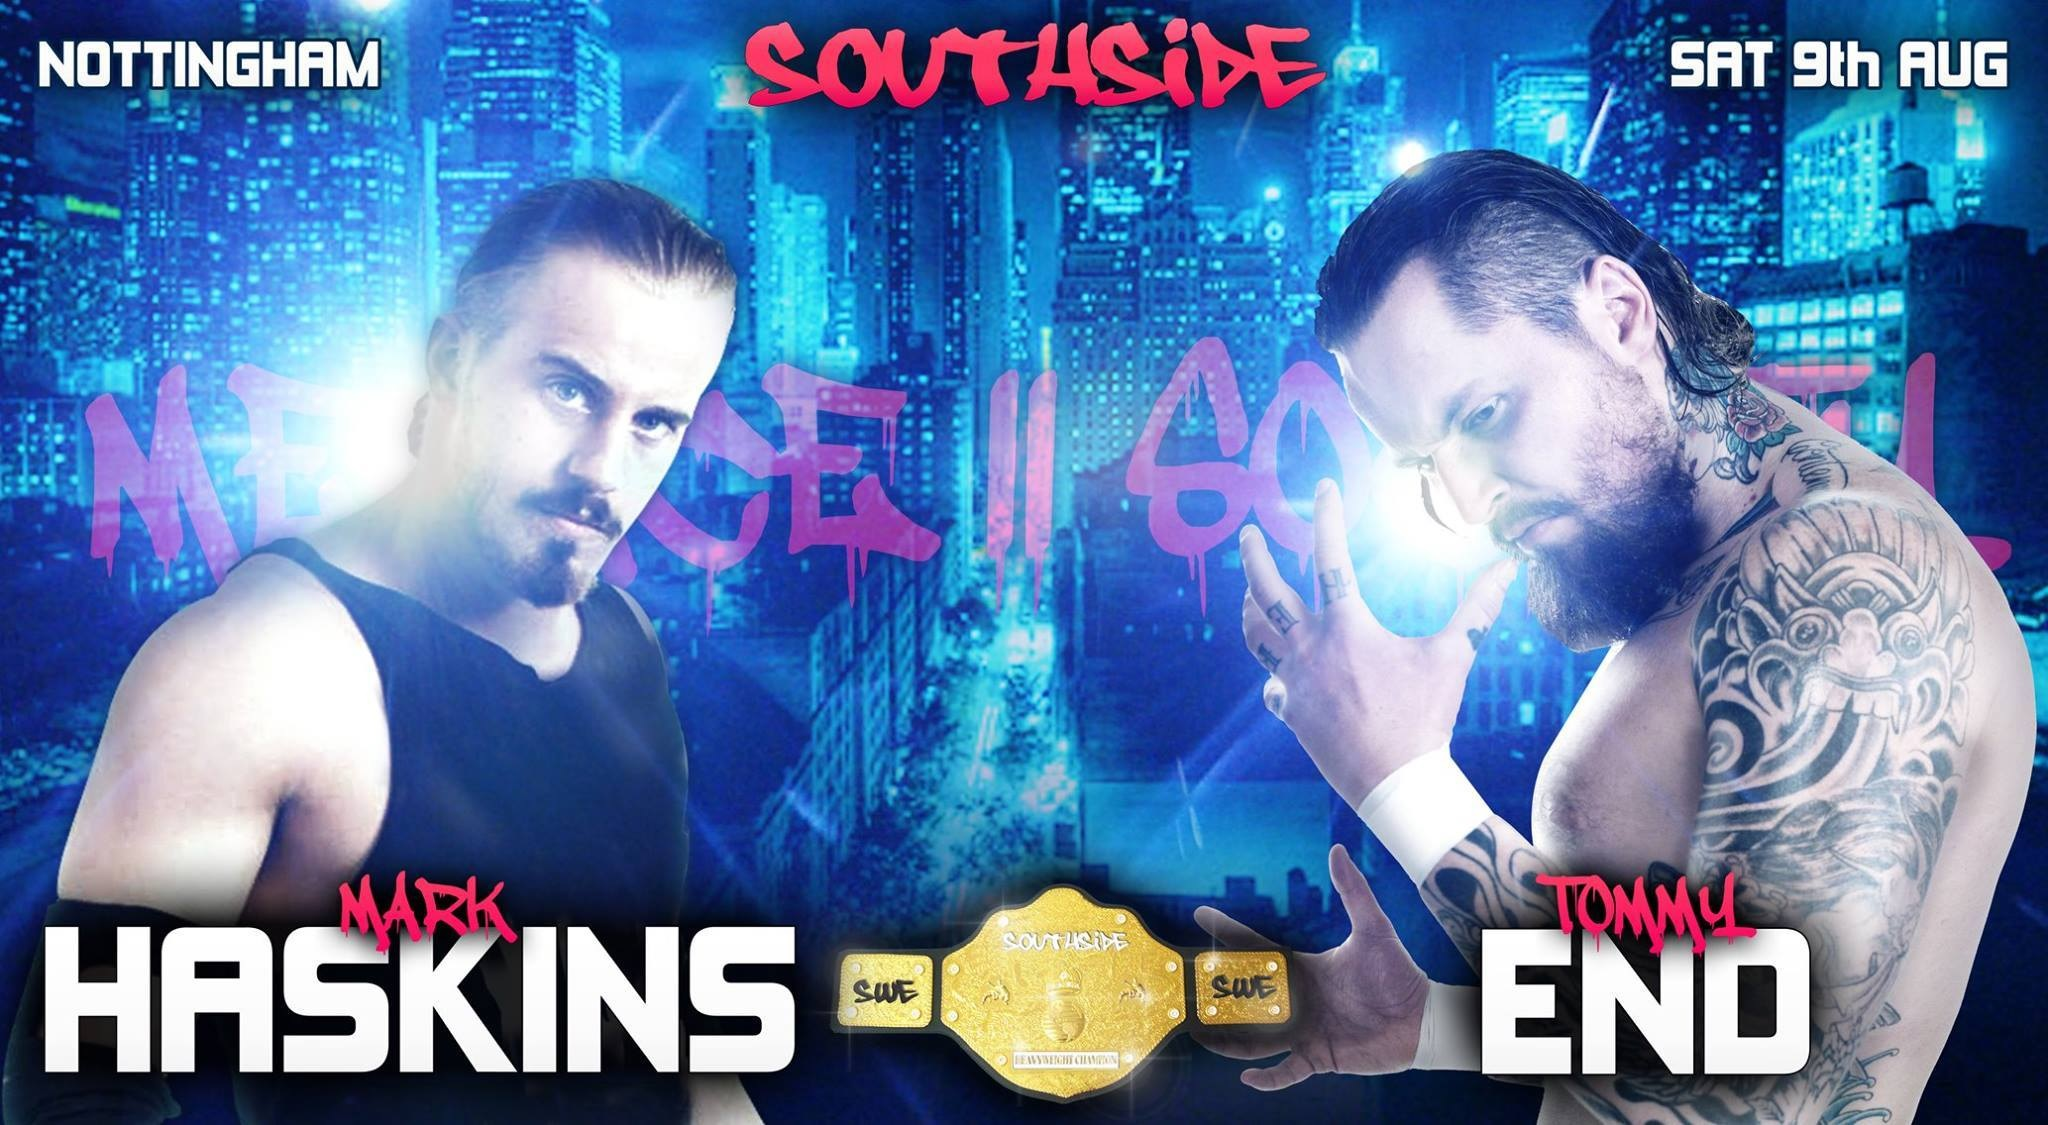 Tommy End v Mark Haskins promo video for the rematch on the 9th August.